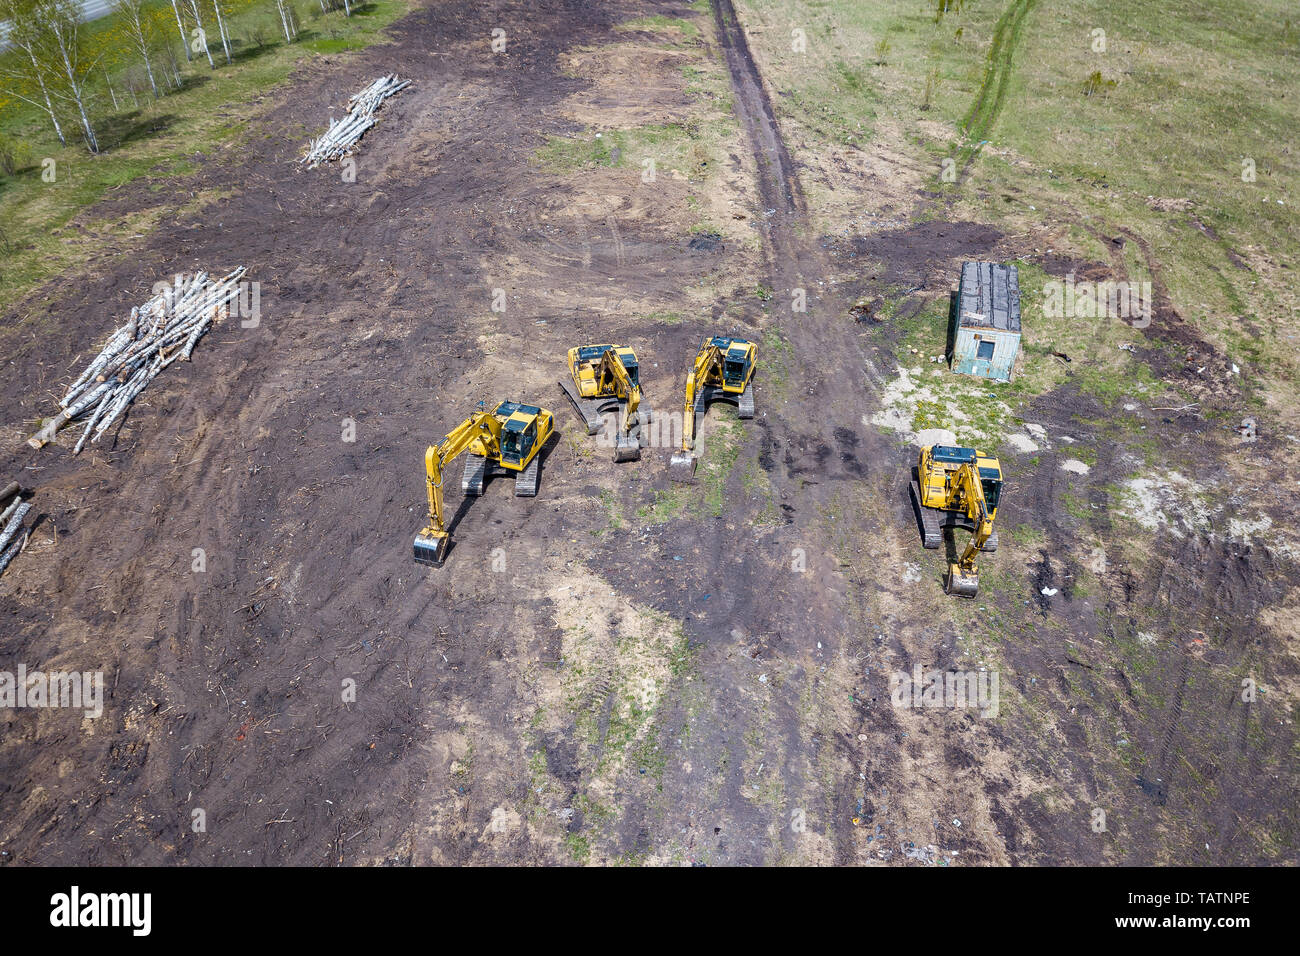 Aerial top view of four yellow crawler excavators standing on ground near the construction site and waiting for the working day to start digging the g - Stock Image